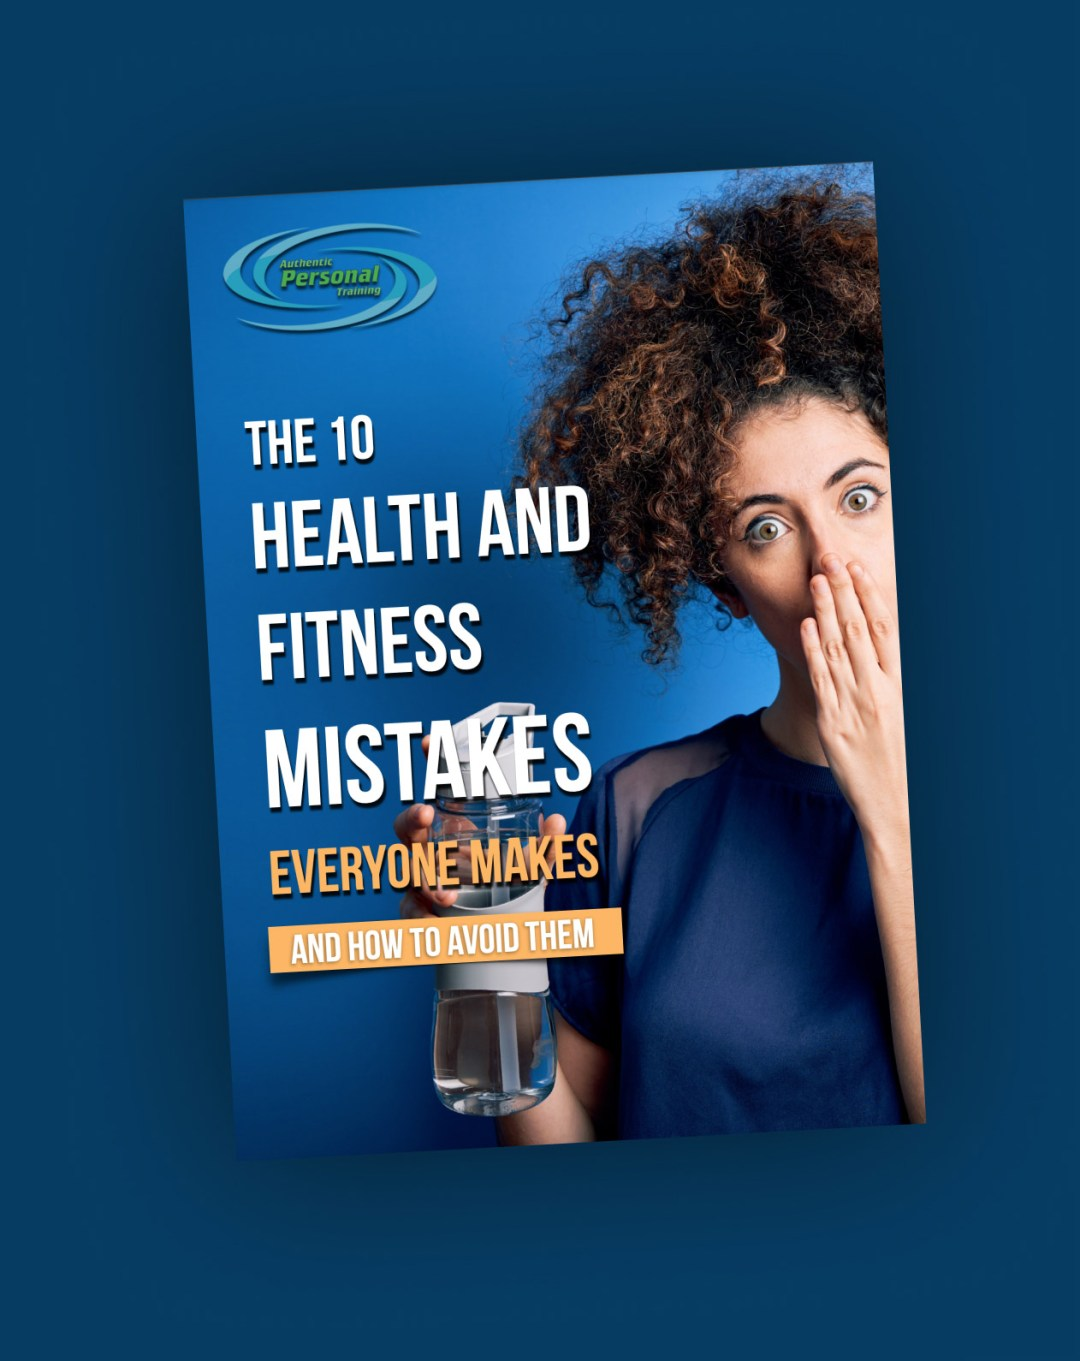 The 10 Health and Fitness Mistakes PDF